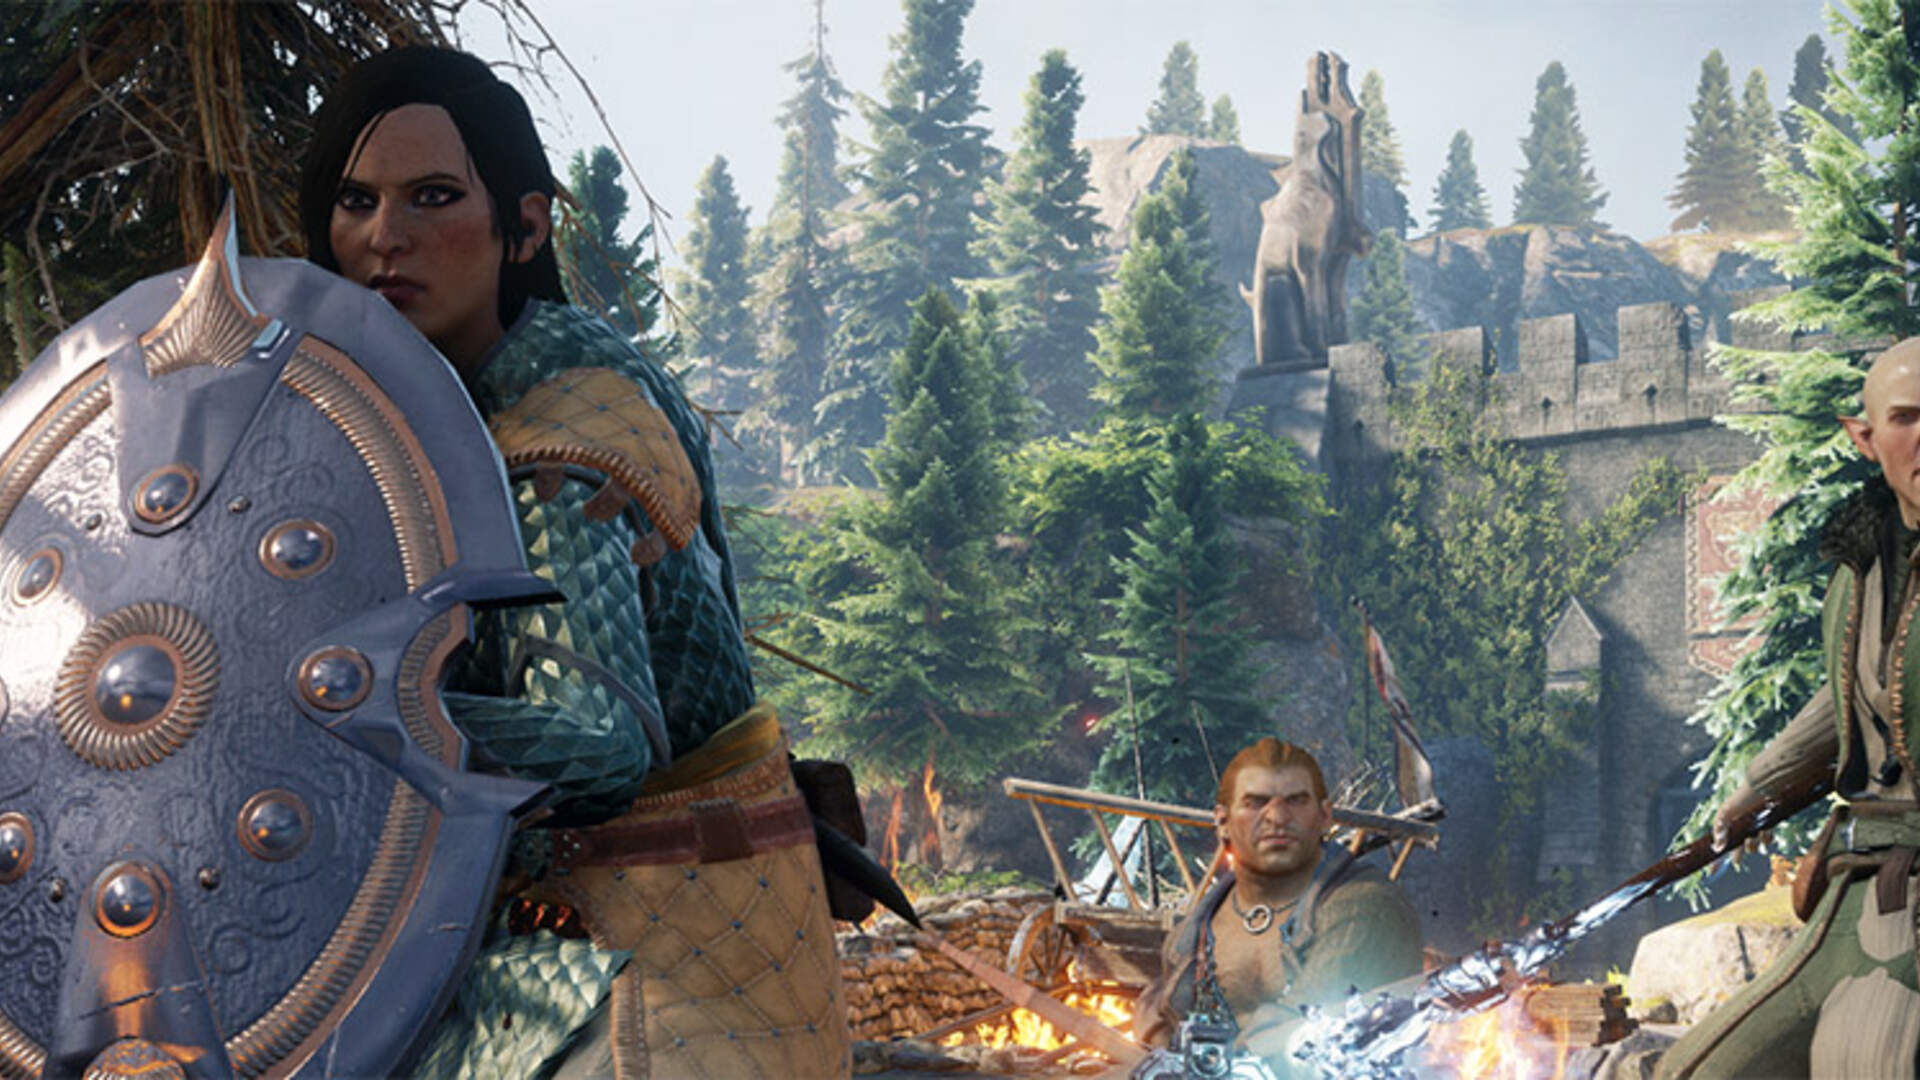 Does it Hold Up? - Dragon Age: Inquisition